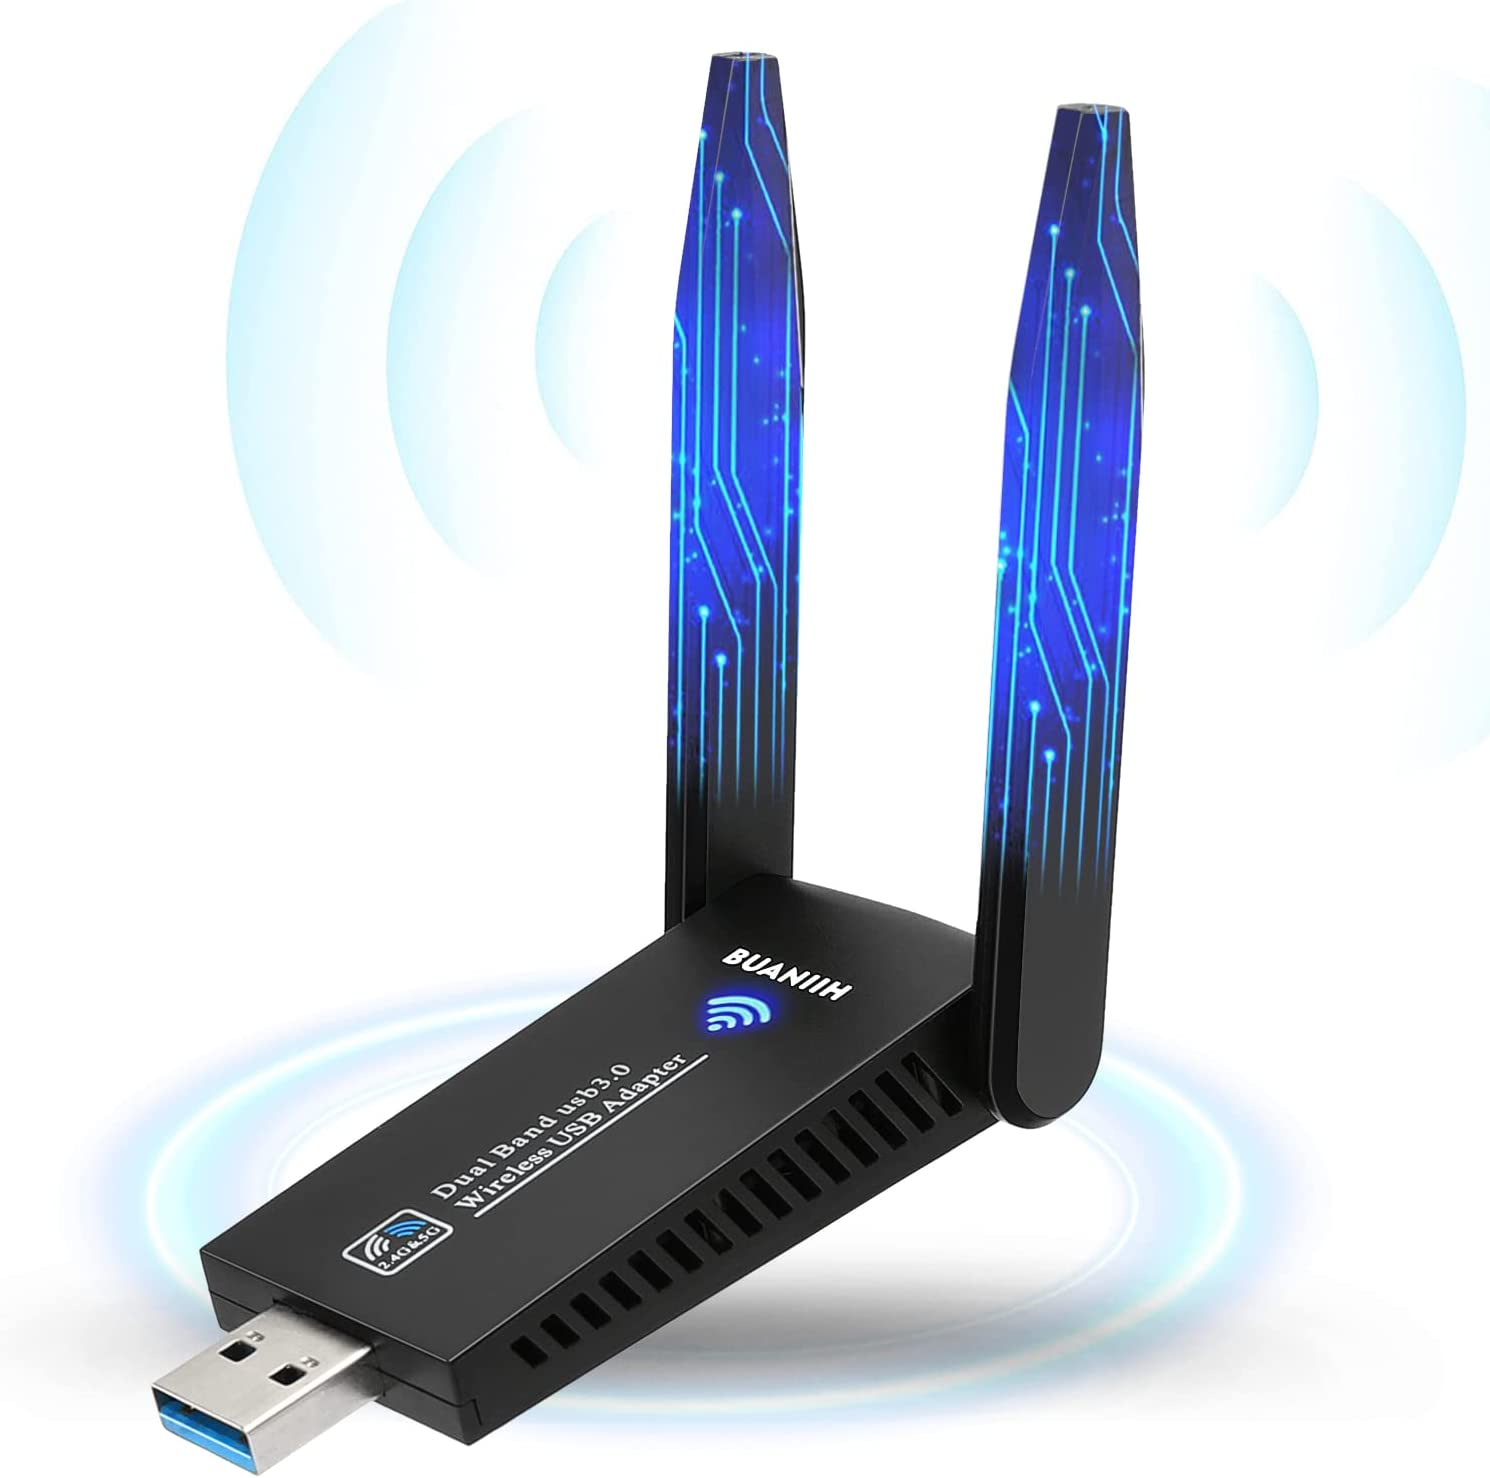 Wireless USB WiFi Adapter for PC,1300Mbps Dual 5Dbi Antennas,Support2.42GHz/400Mbps & 5.8GHz/867Mbps Network,802.11AC Compliant,USB 3.0,Support Win10/8/7/XP, Mac OS/10.9-10.15